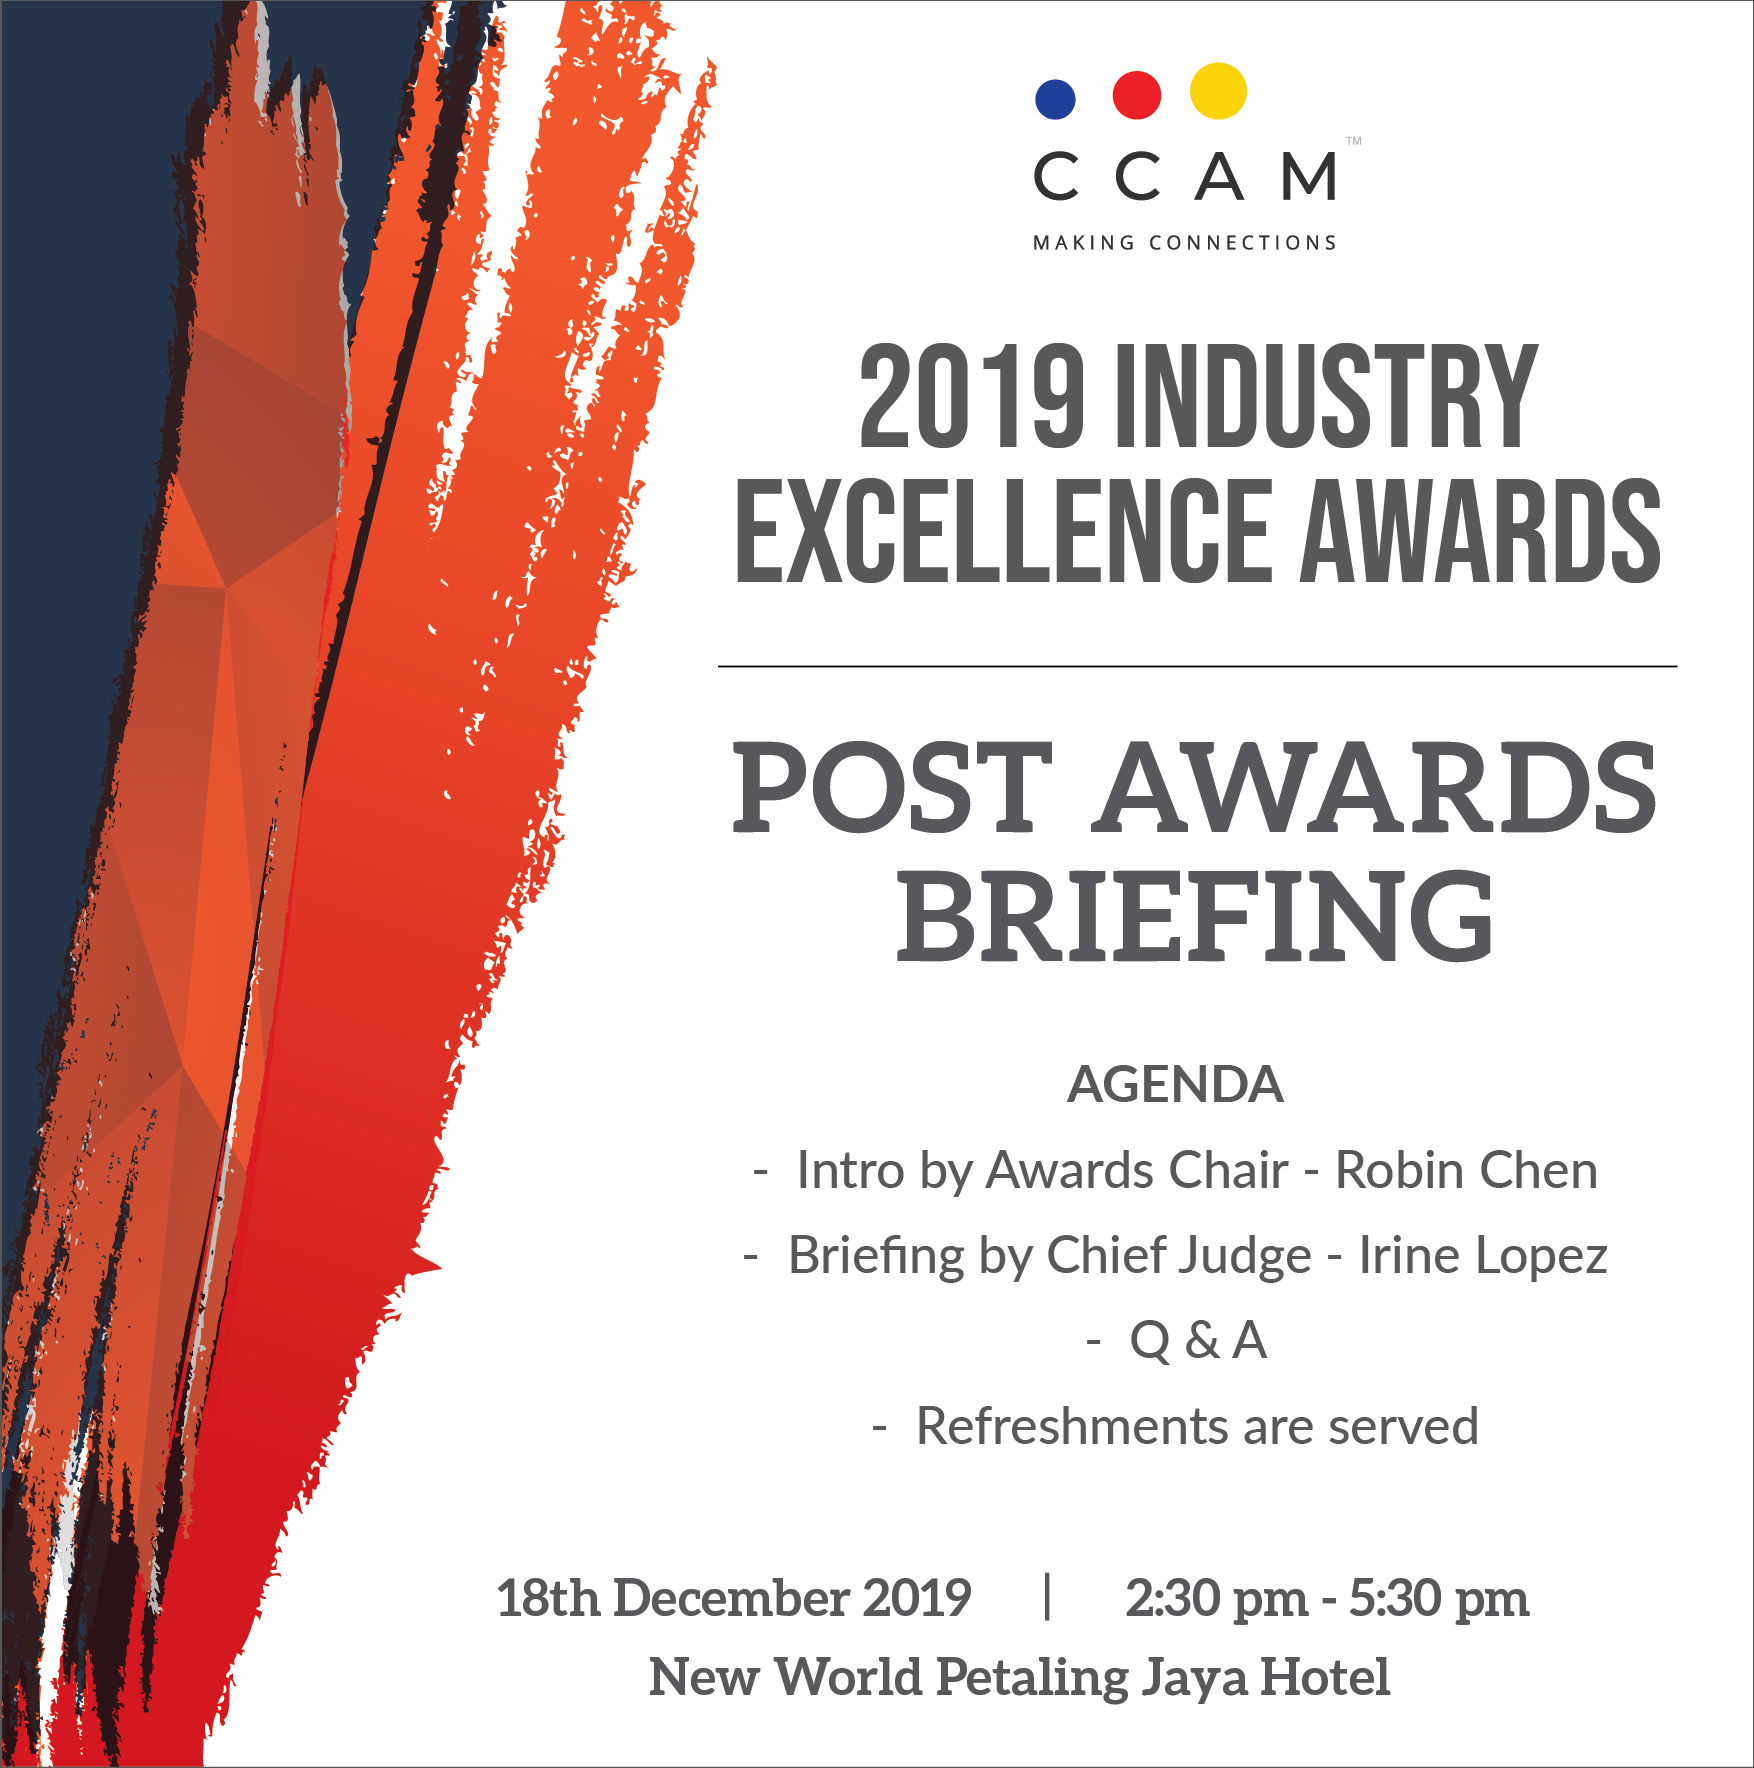 Post Awards Briefing 2019